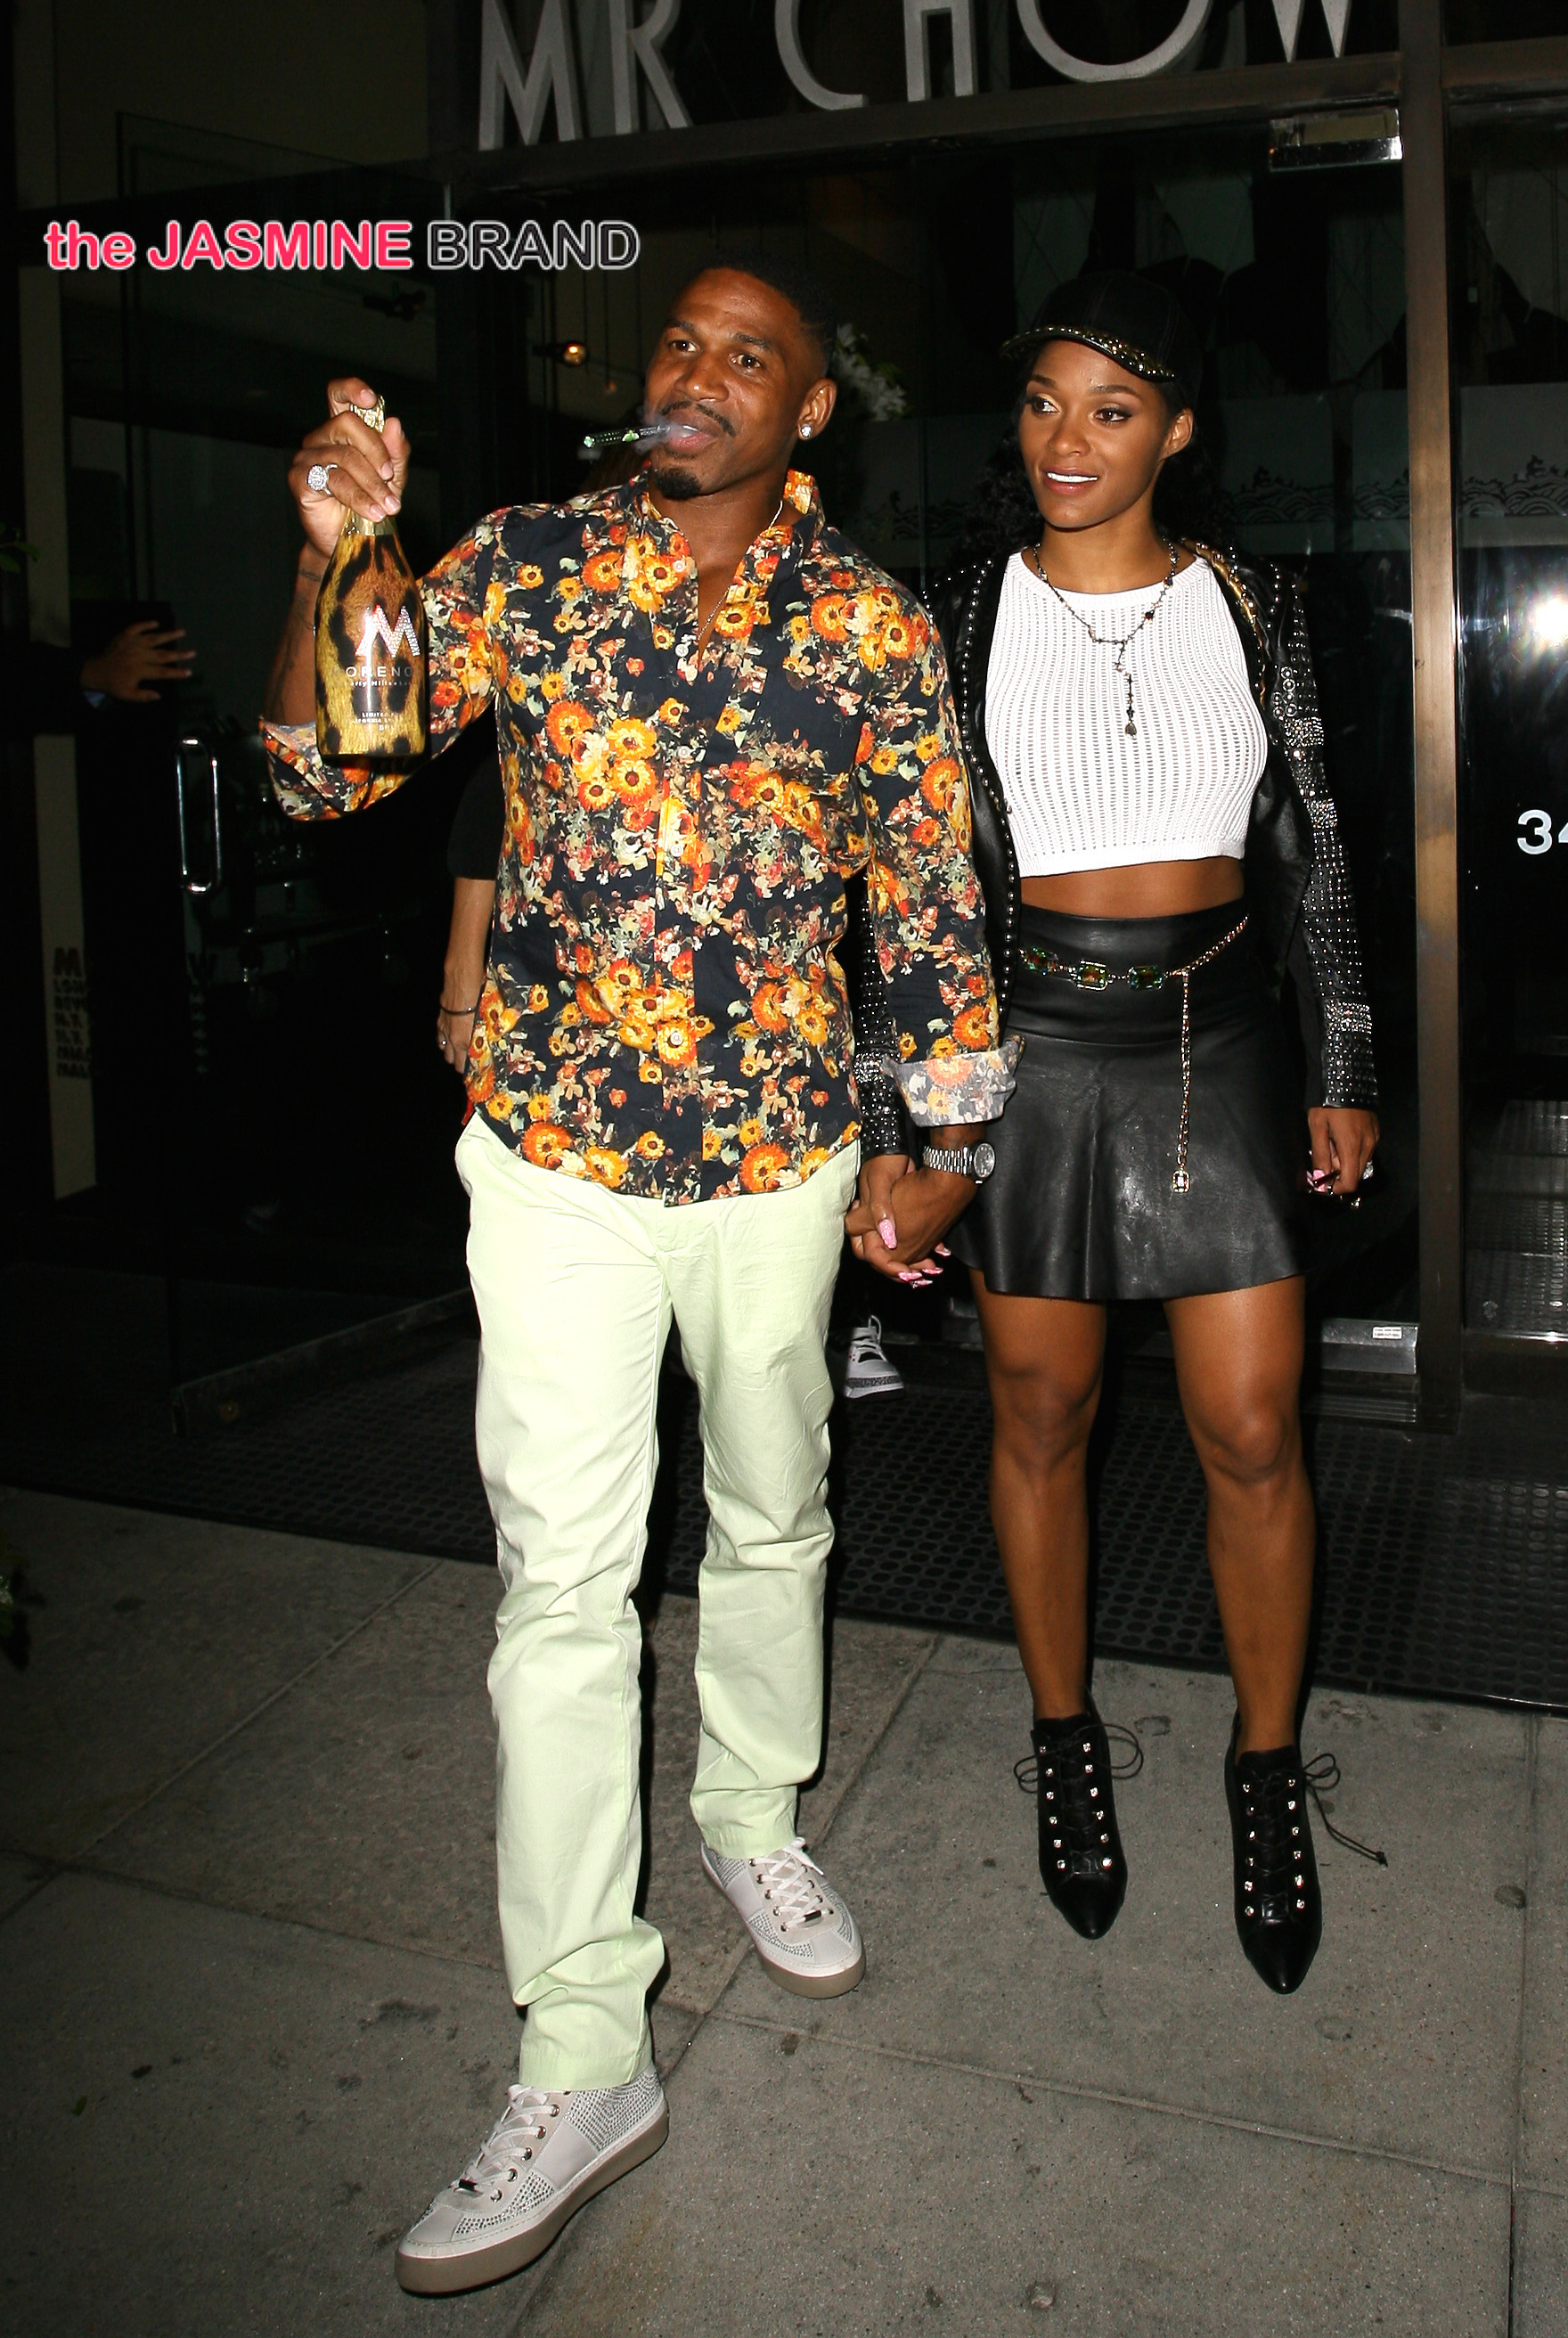 Music producer Stevie J dines out with his wife at Mr.Chow in Beverly Hills, CA